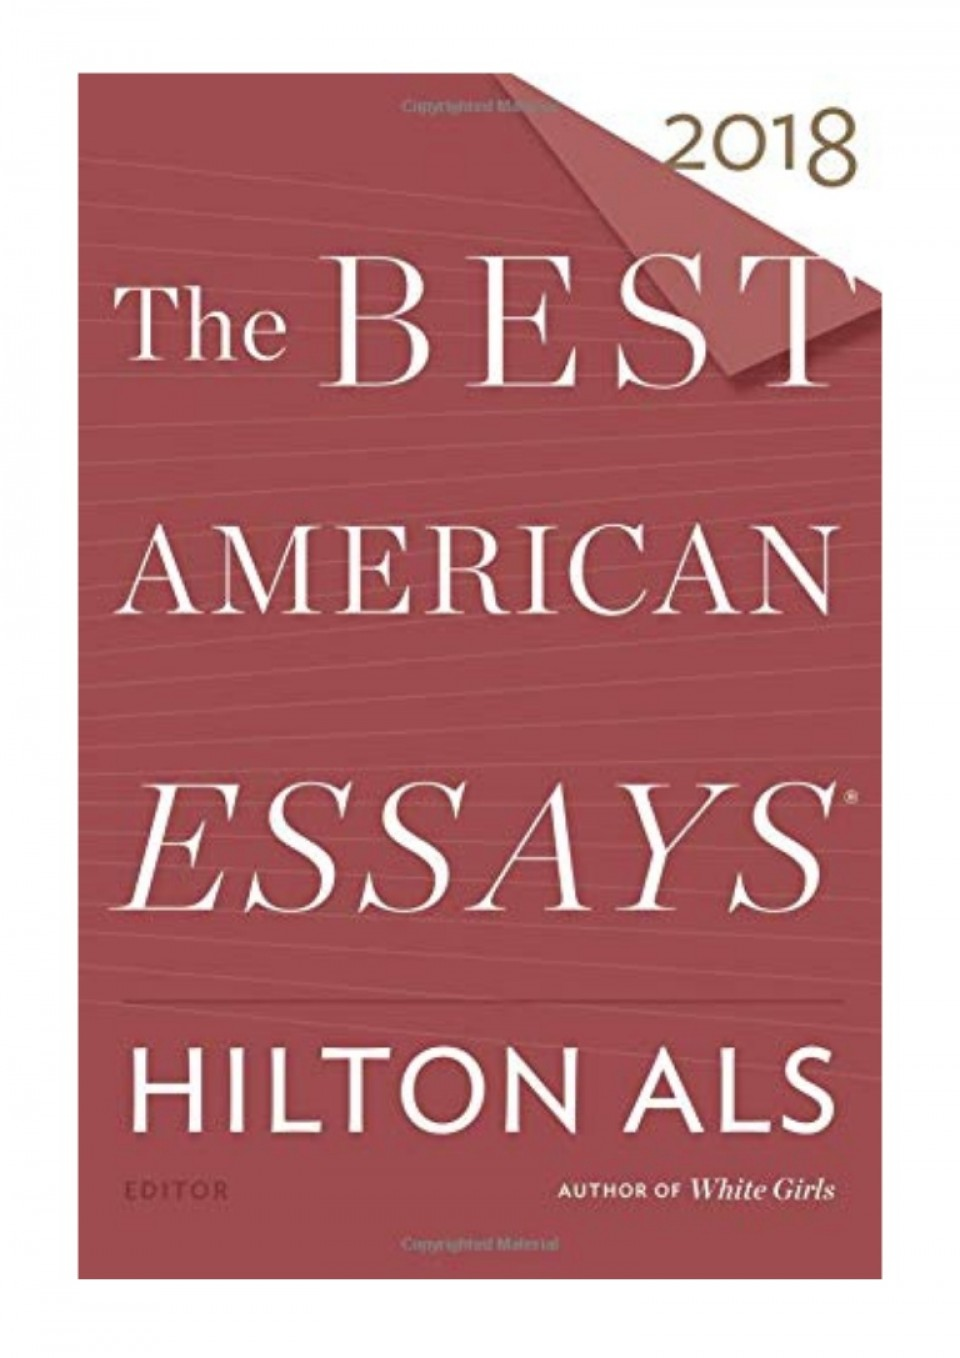 016 The Best American Essays Essay Example Thebestamericanessays2018by Thumbnail Wonderful 2013 Pdf Download Of Century Sparknotes 2017 960